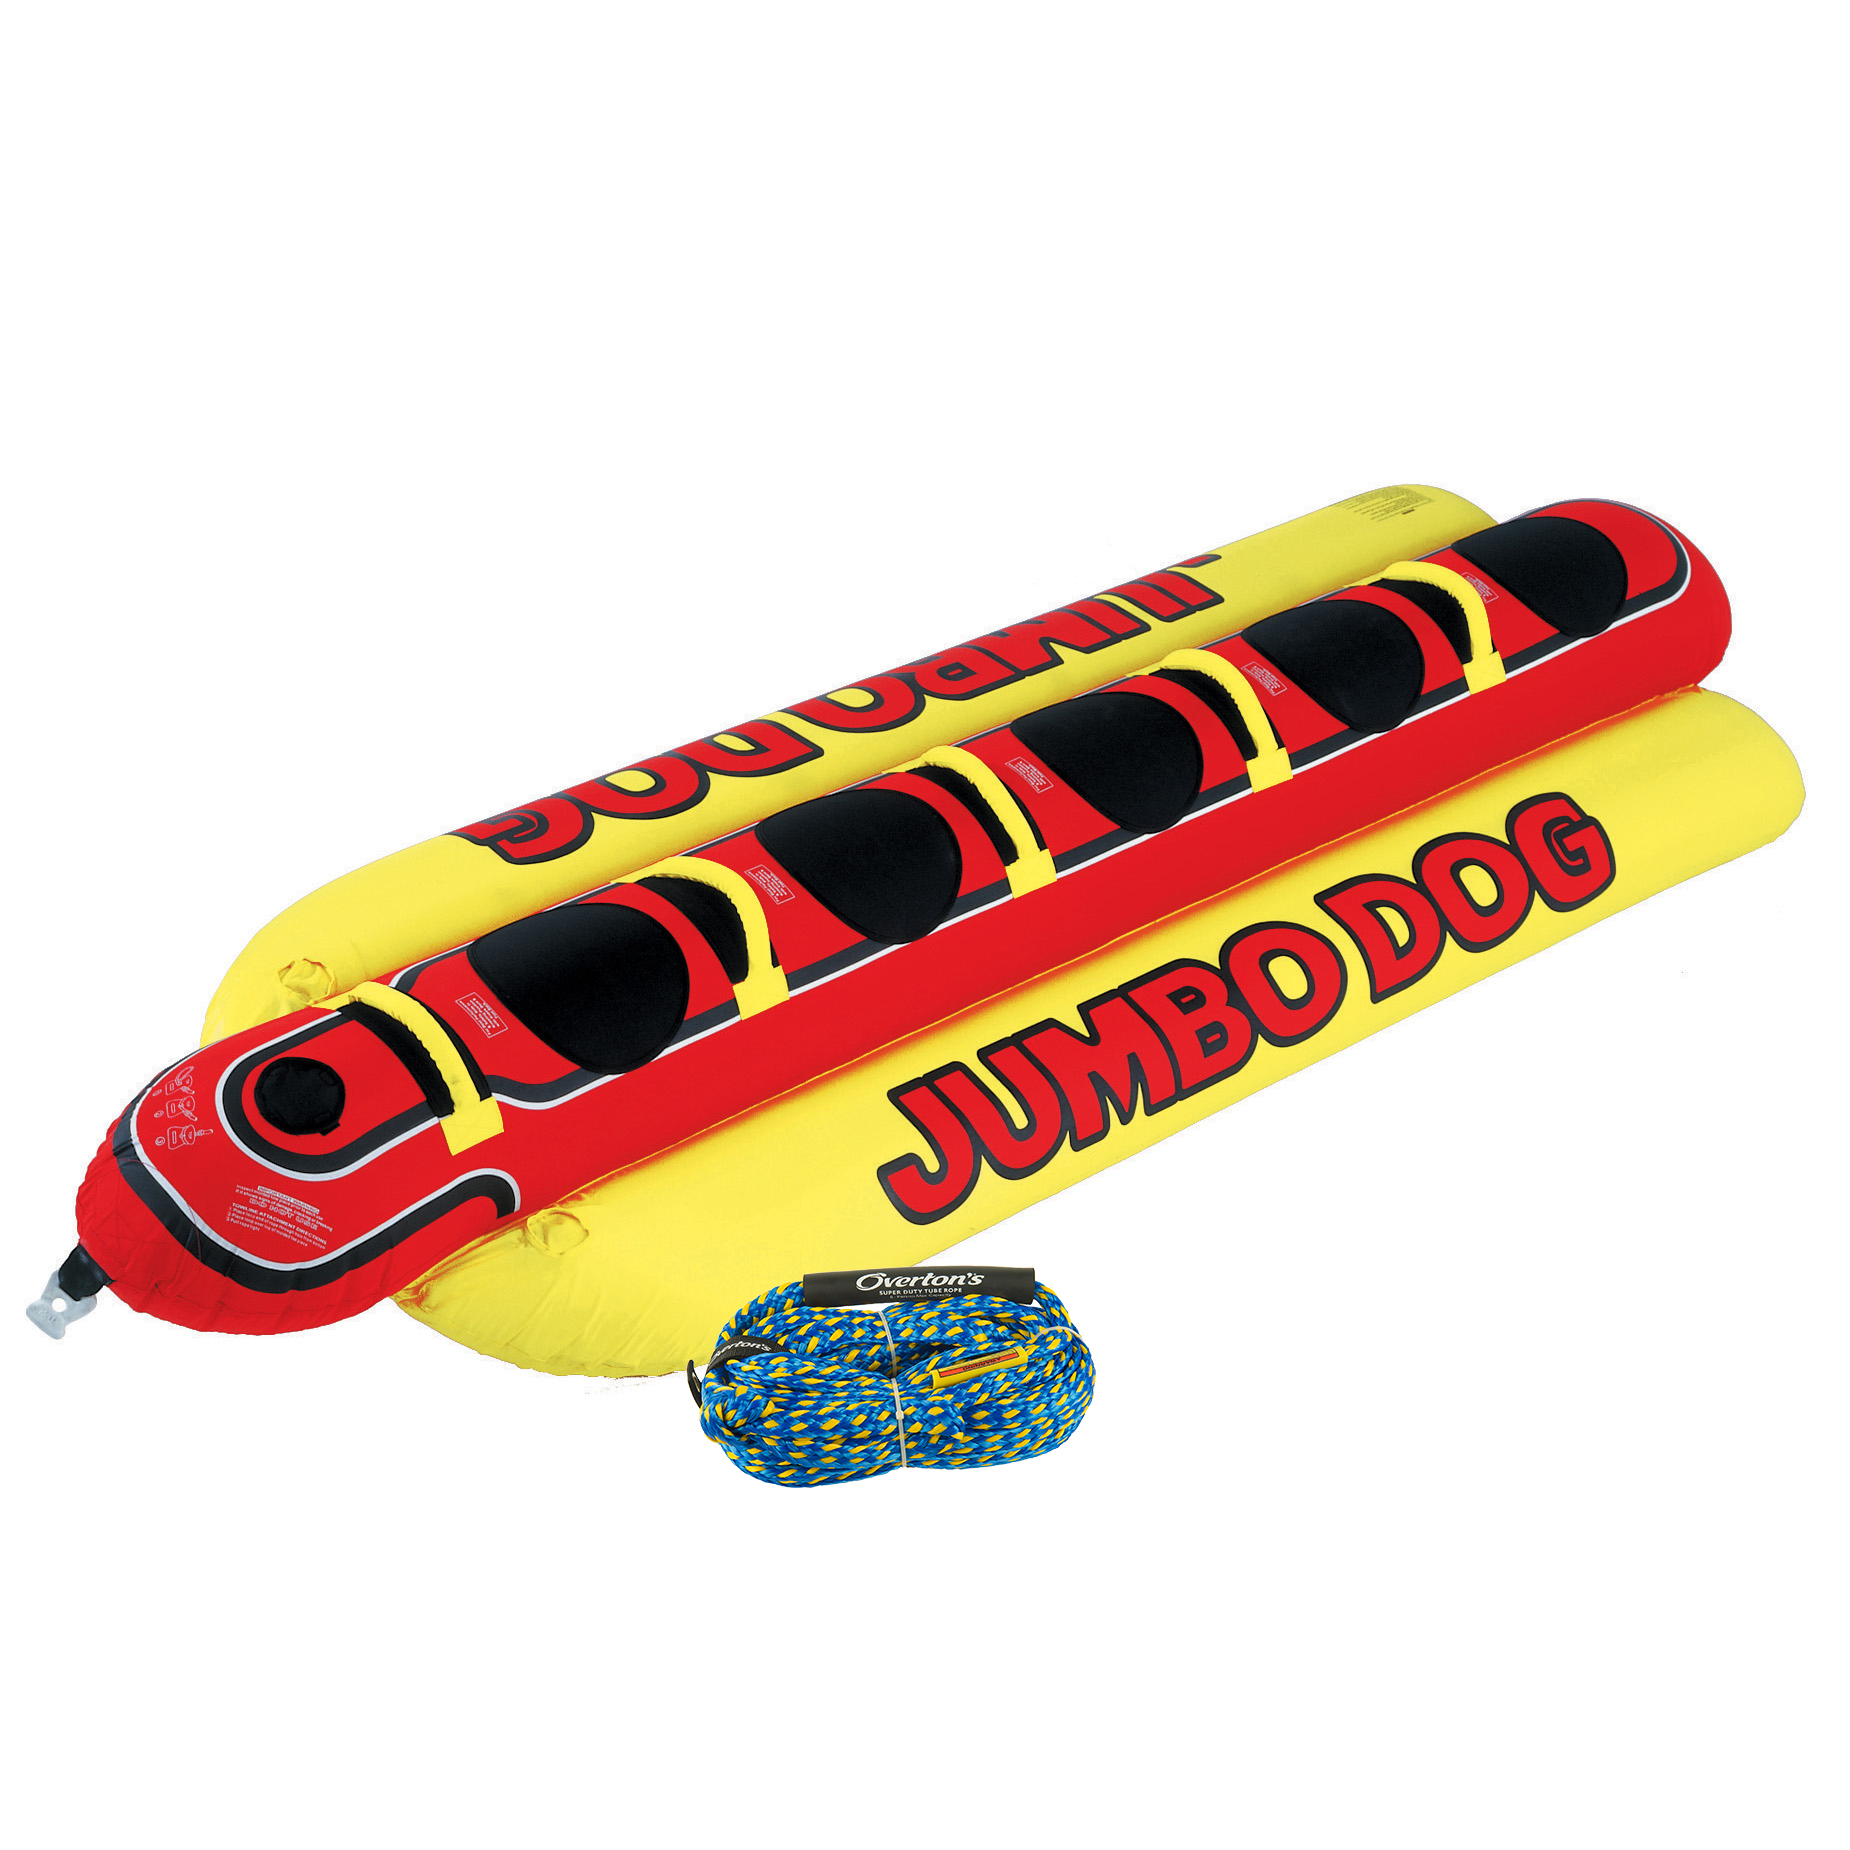 Airhead Jumbo Dog 5-Person Towable Package With Rope